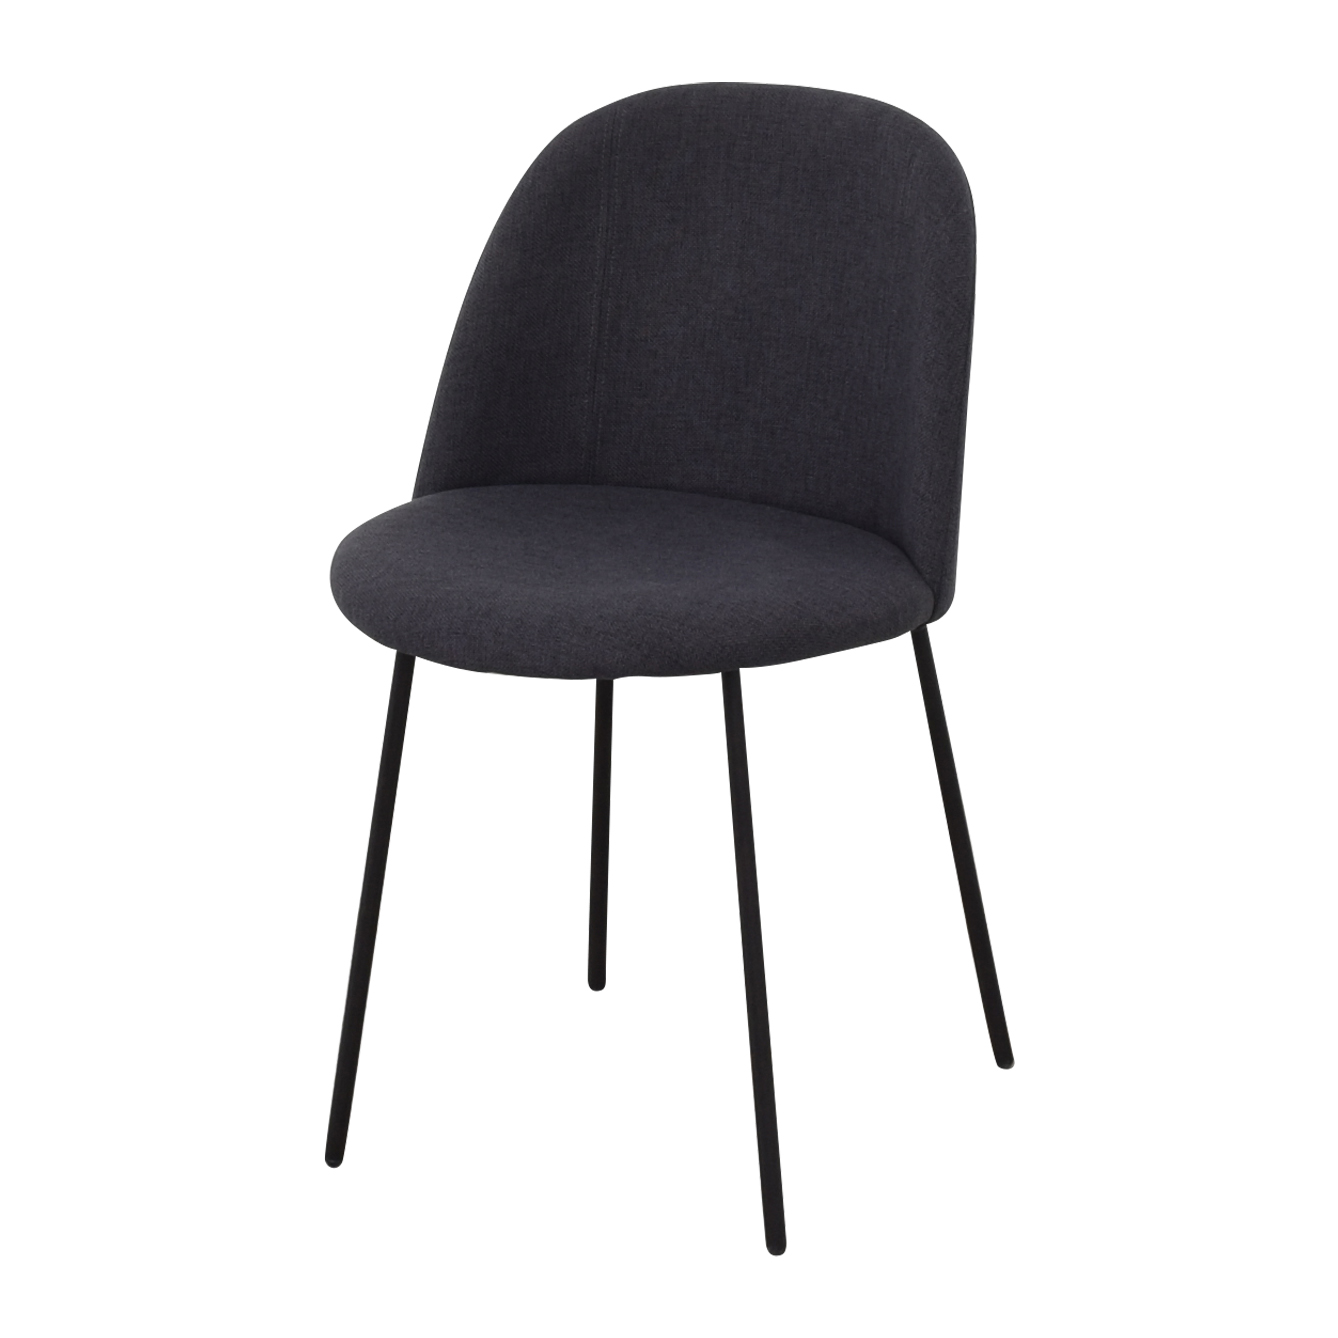 Article Article Ceres Dining Chairs on sale